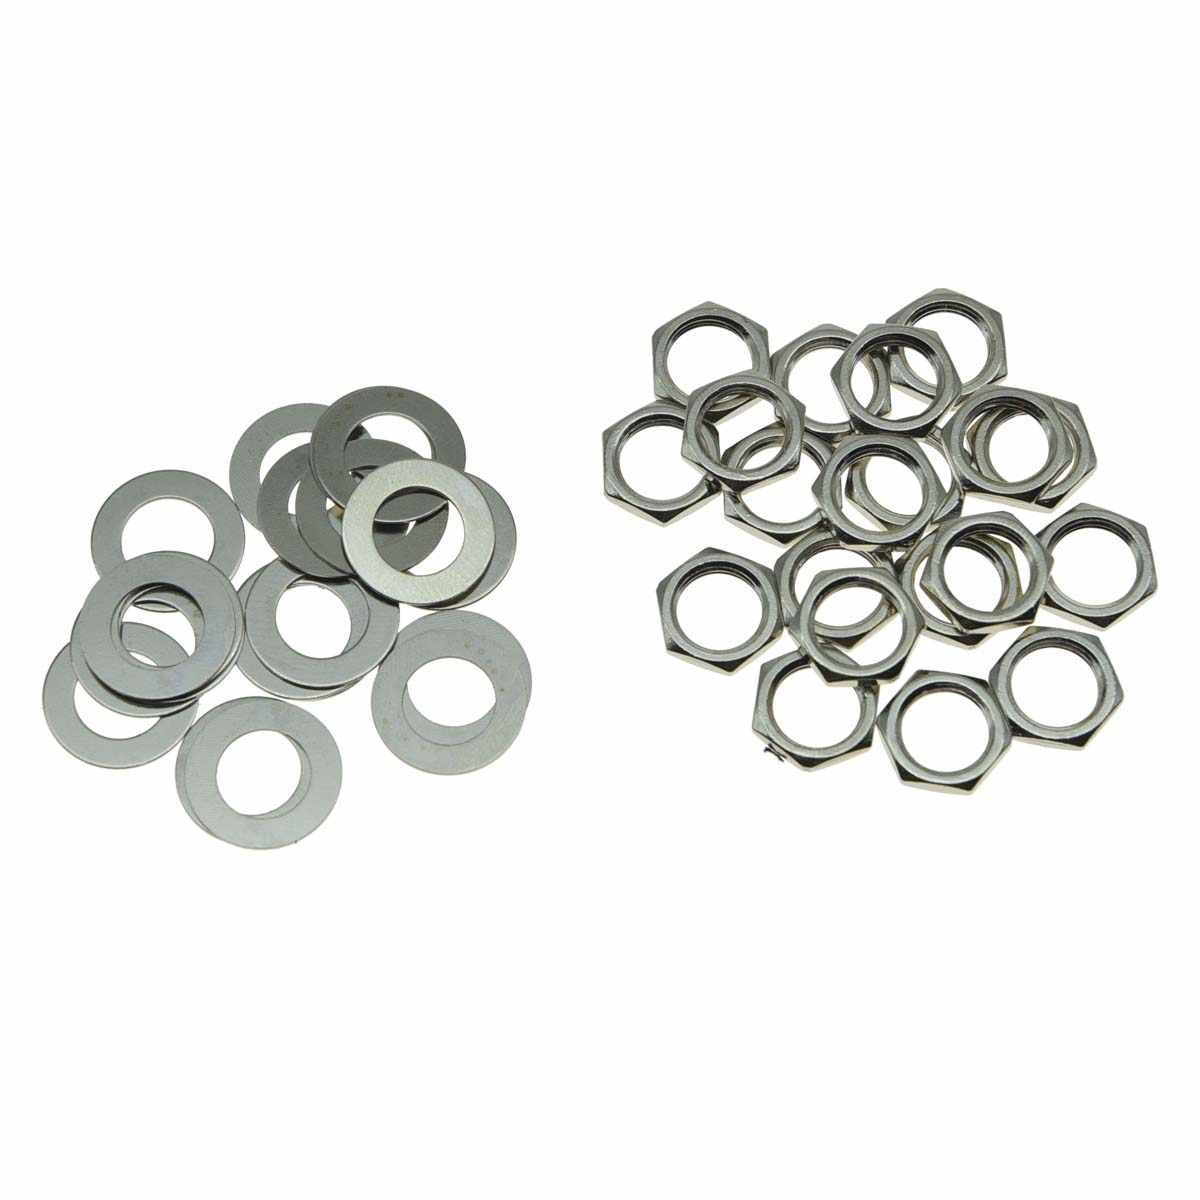 "KAISH 20pcs US Thread 3/8"" Guitar Pots Nuts Potentiometer Hex Nut and Washers for CTS Pots & Switchcraft Jacks Nickel"